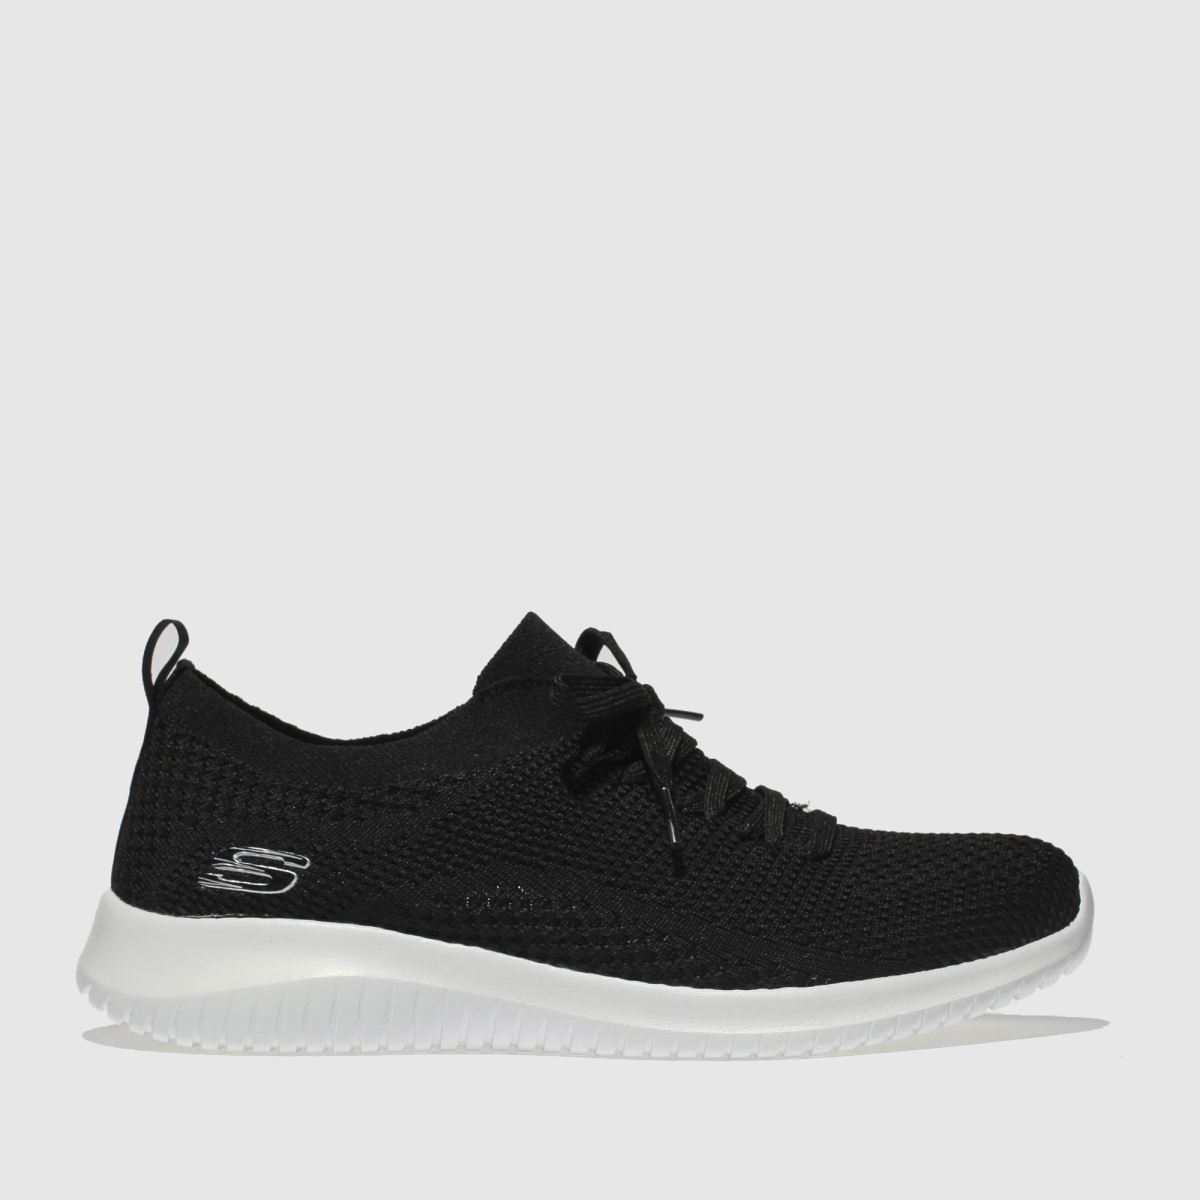 c730cfe48c27 Skechers Black   White Ultra Flex Statements Trainers